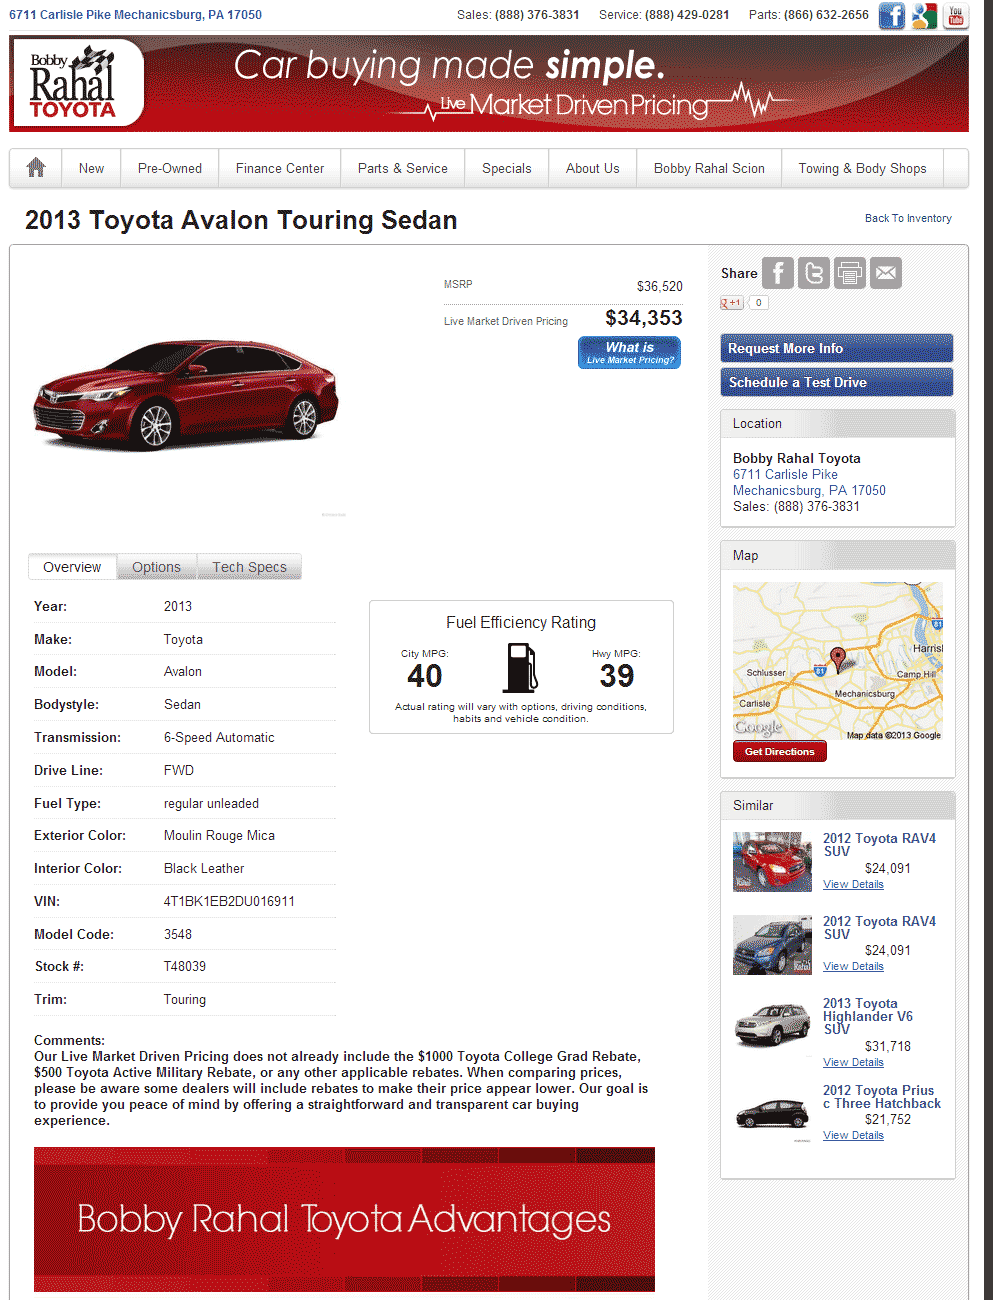 2013 Toyota Avalon Real Dealer Prices - Free - CostHelper.com